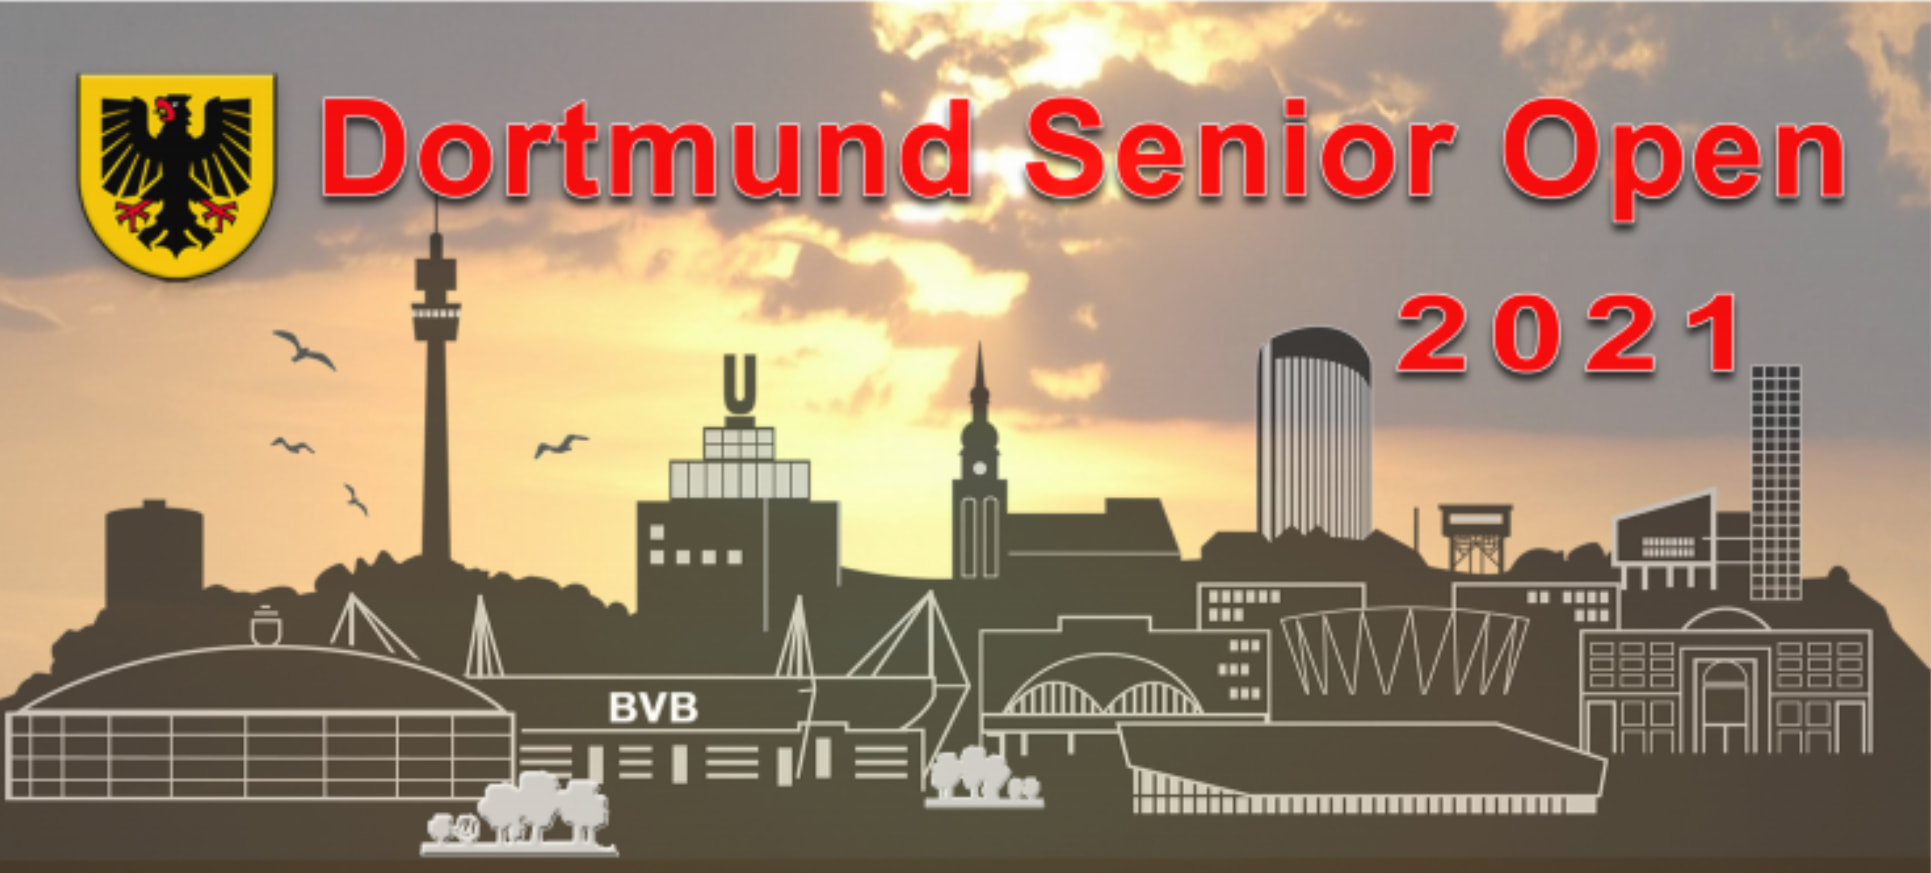 Dortmund Senior Open 2021